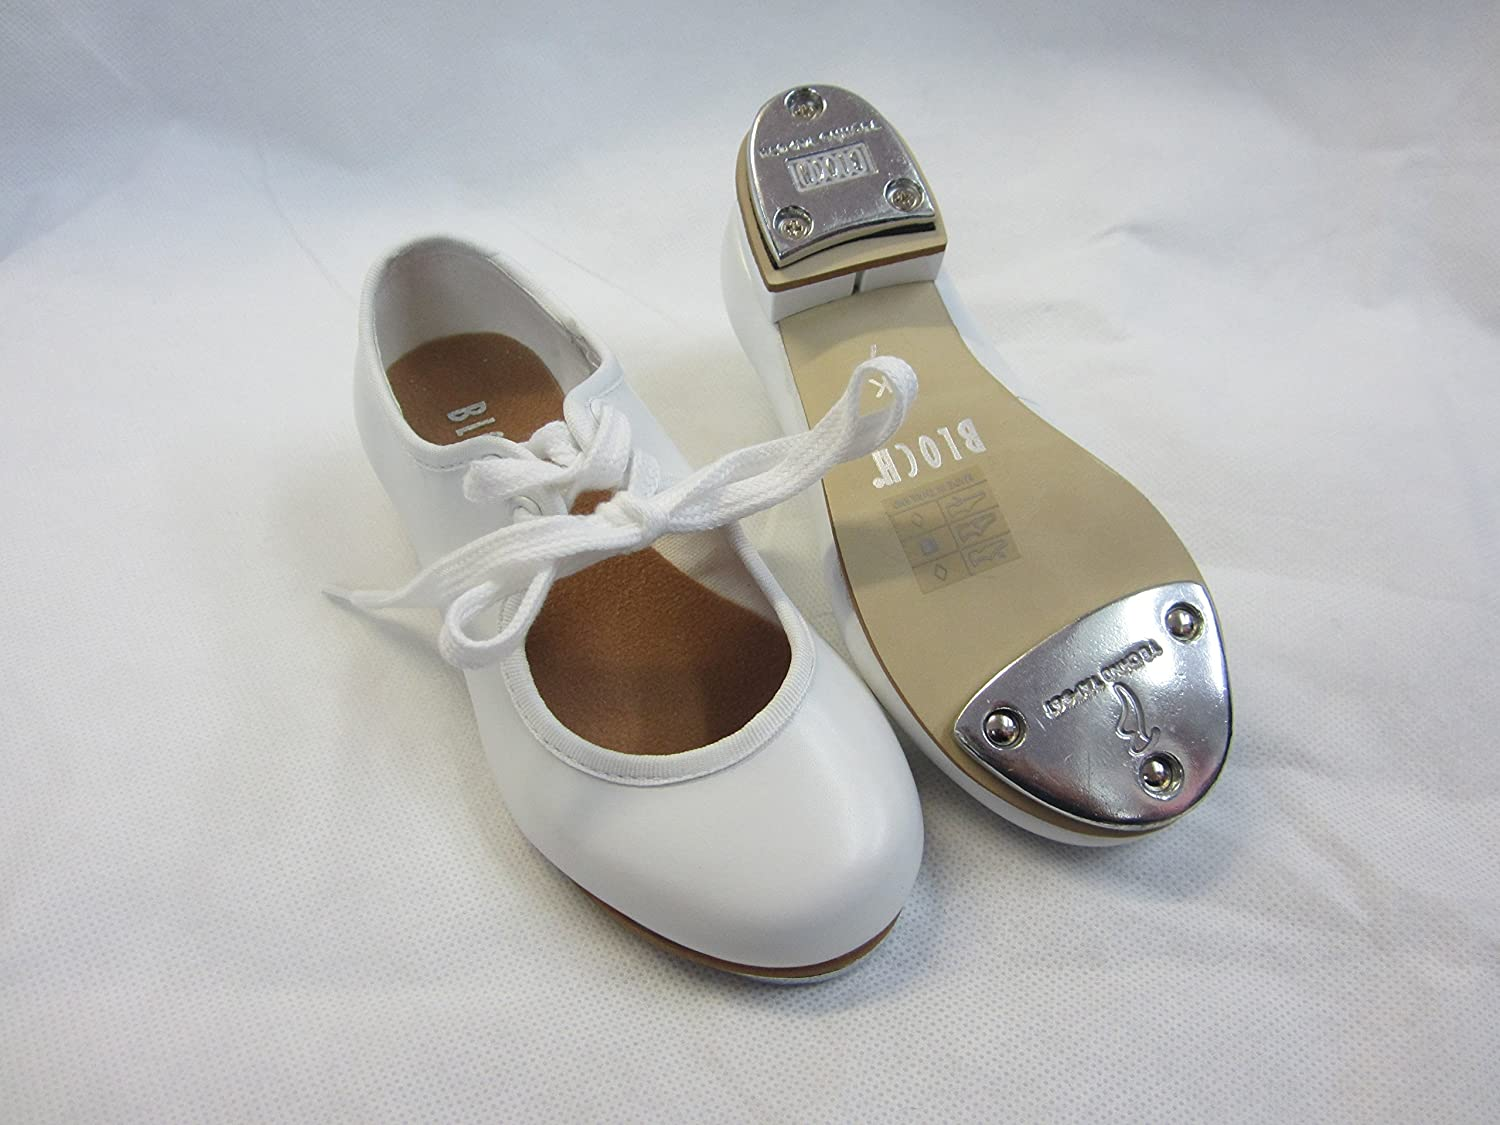 330 bloch white pu tap shoes child size heel and toe taps new